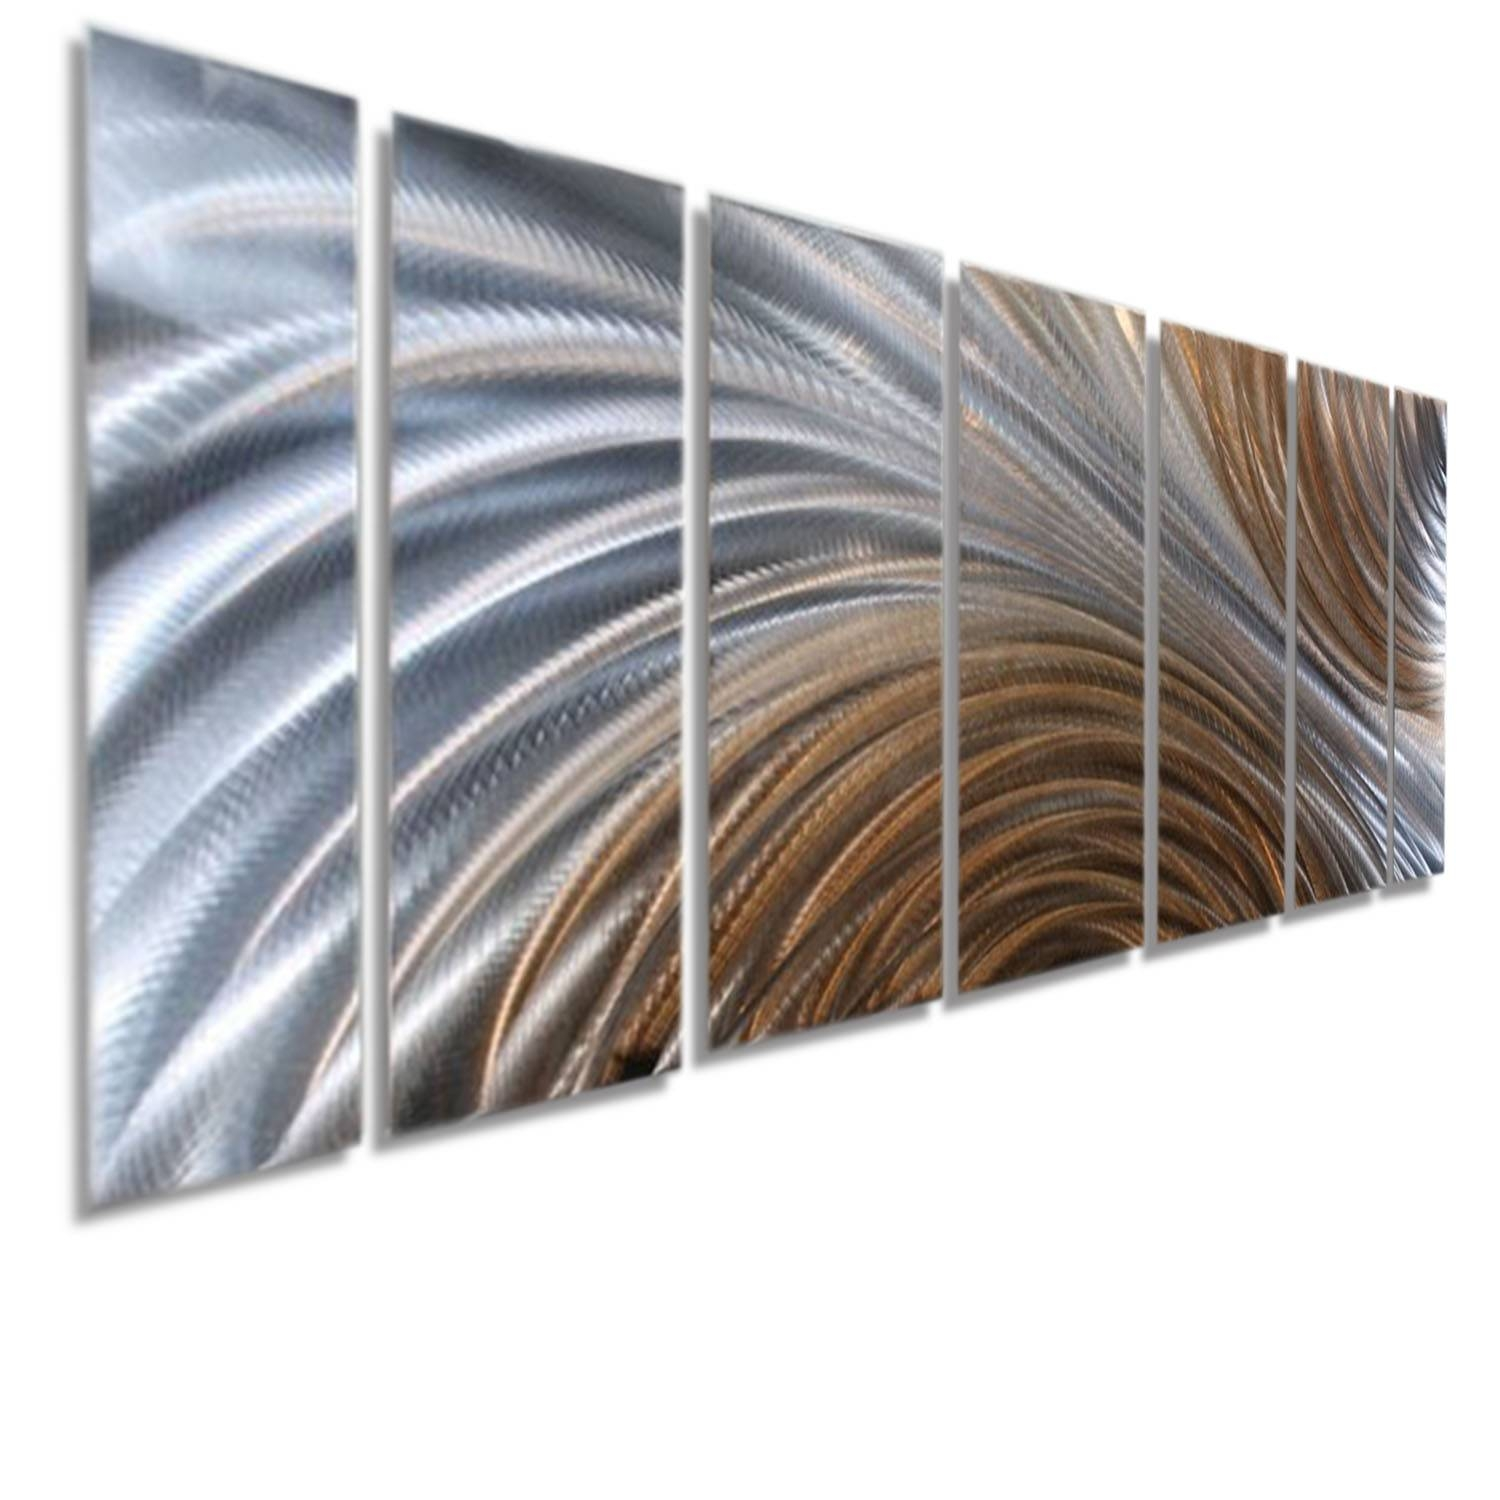 Amber Ascension  Silver & Copper Abstract Metal Wall Artjon Pertaining To Most Recently Released Metal Abstract Wall Art (View 2 of 15)